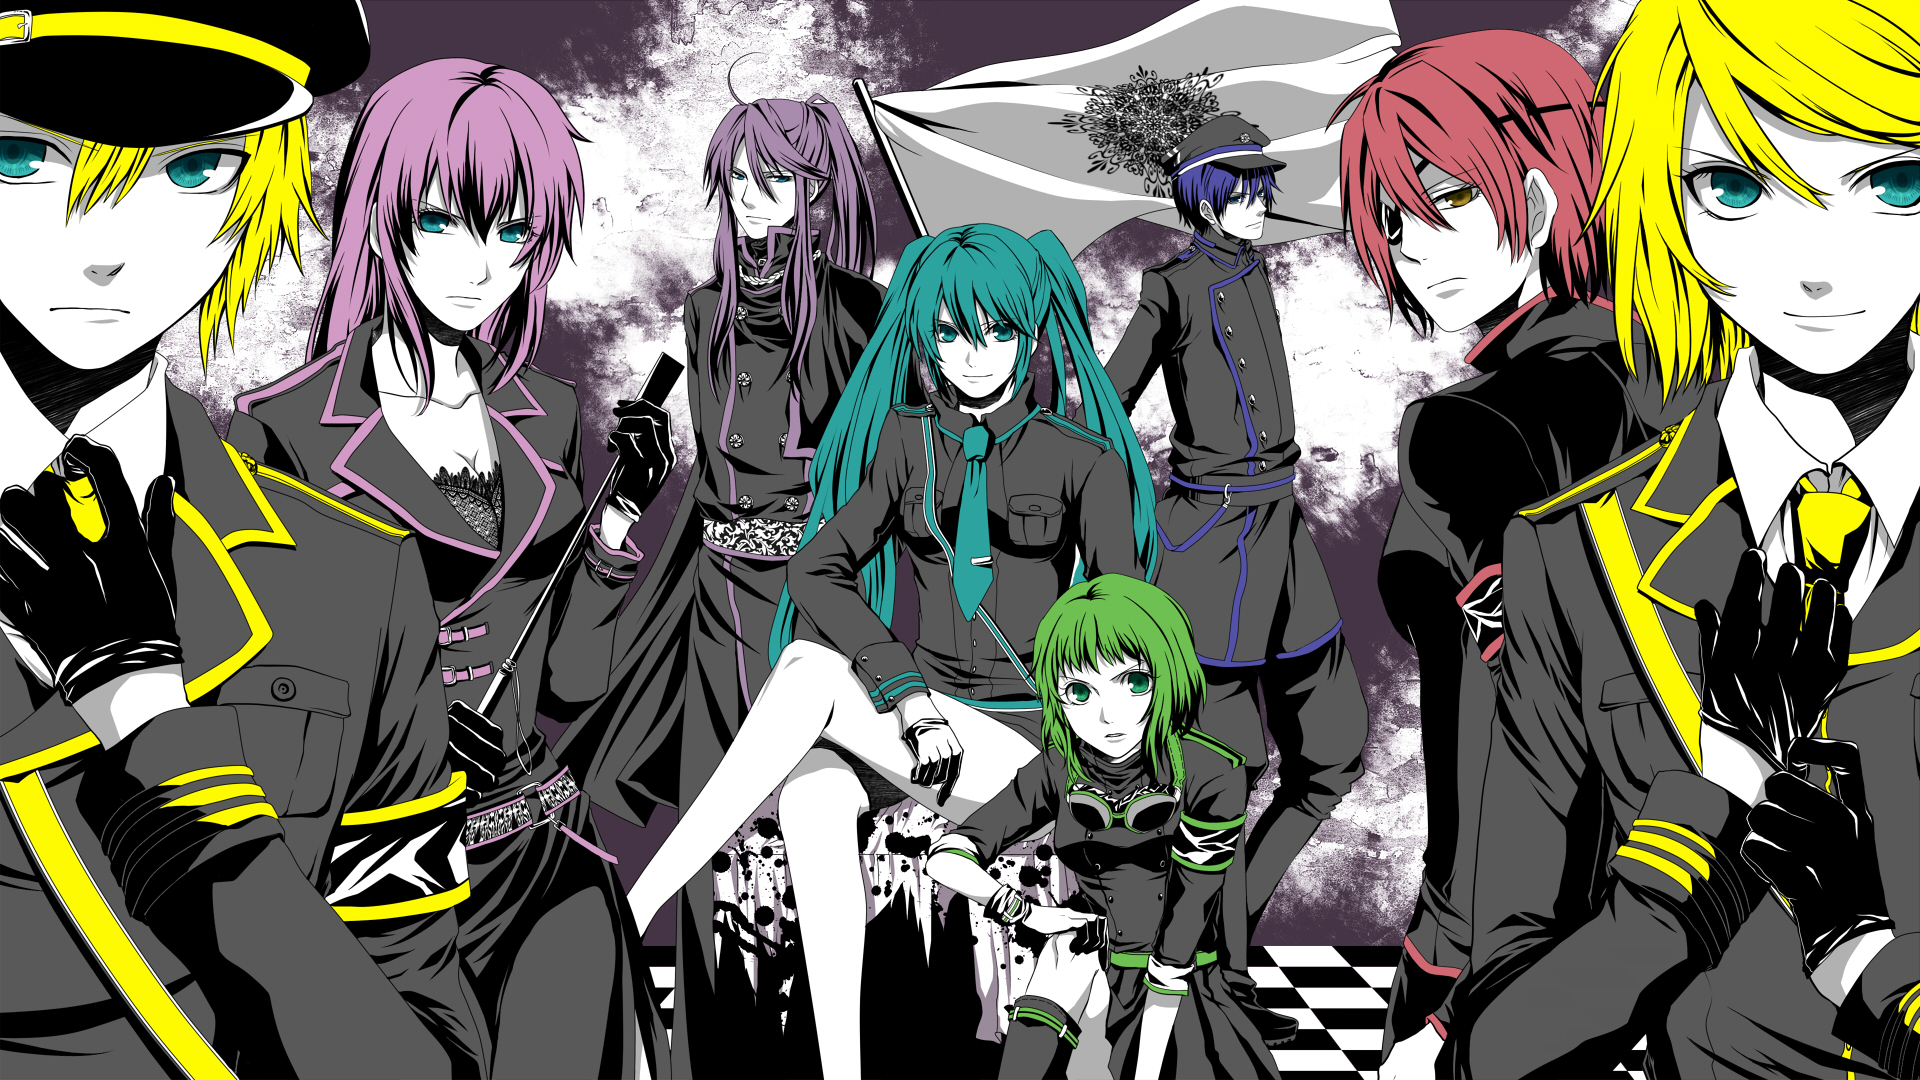 vocaloid characters wallpapers - photo #18